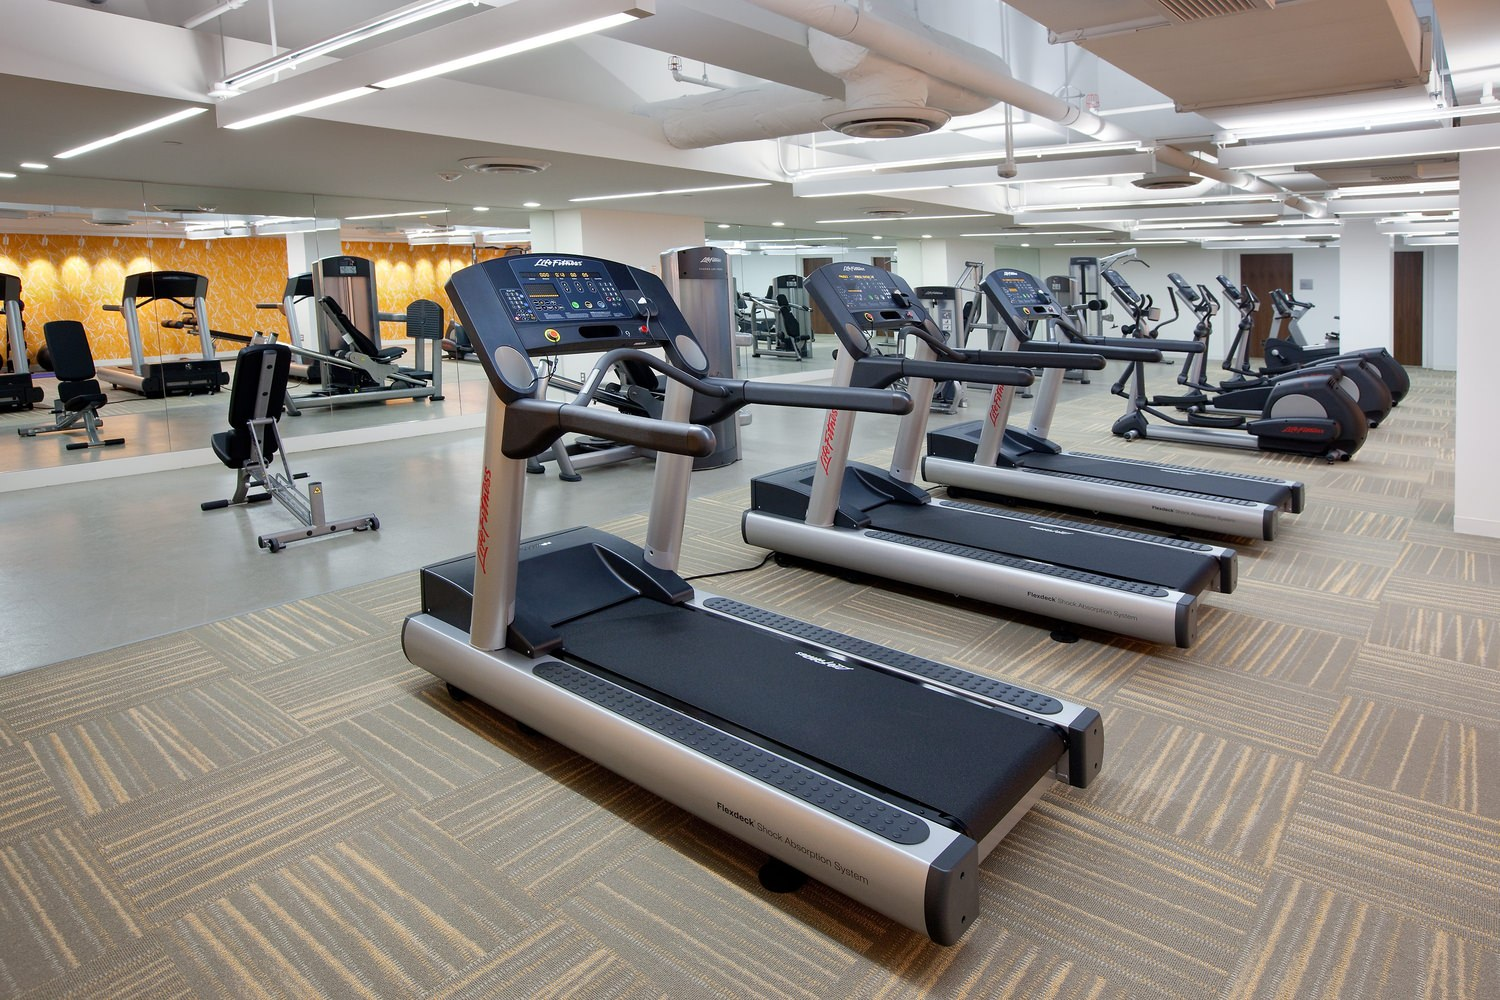 A row of treadmills and other exercise equipments lined along the area of the gym.